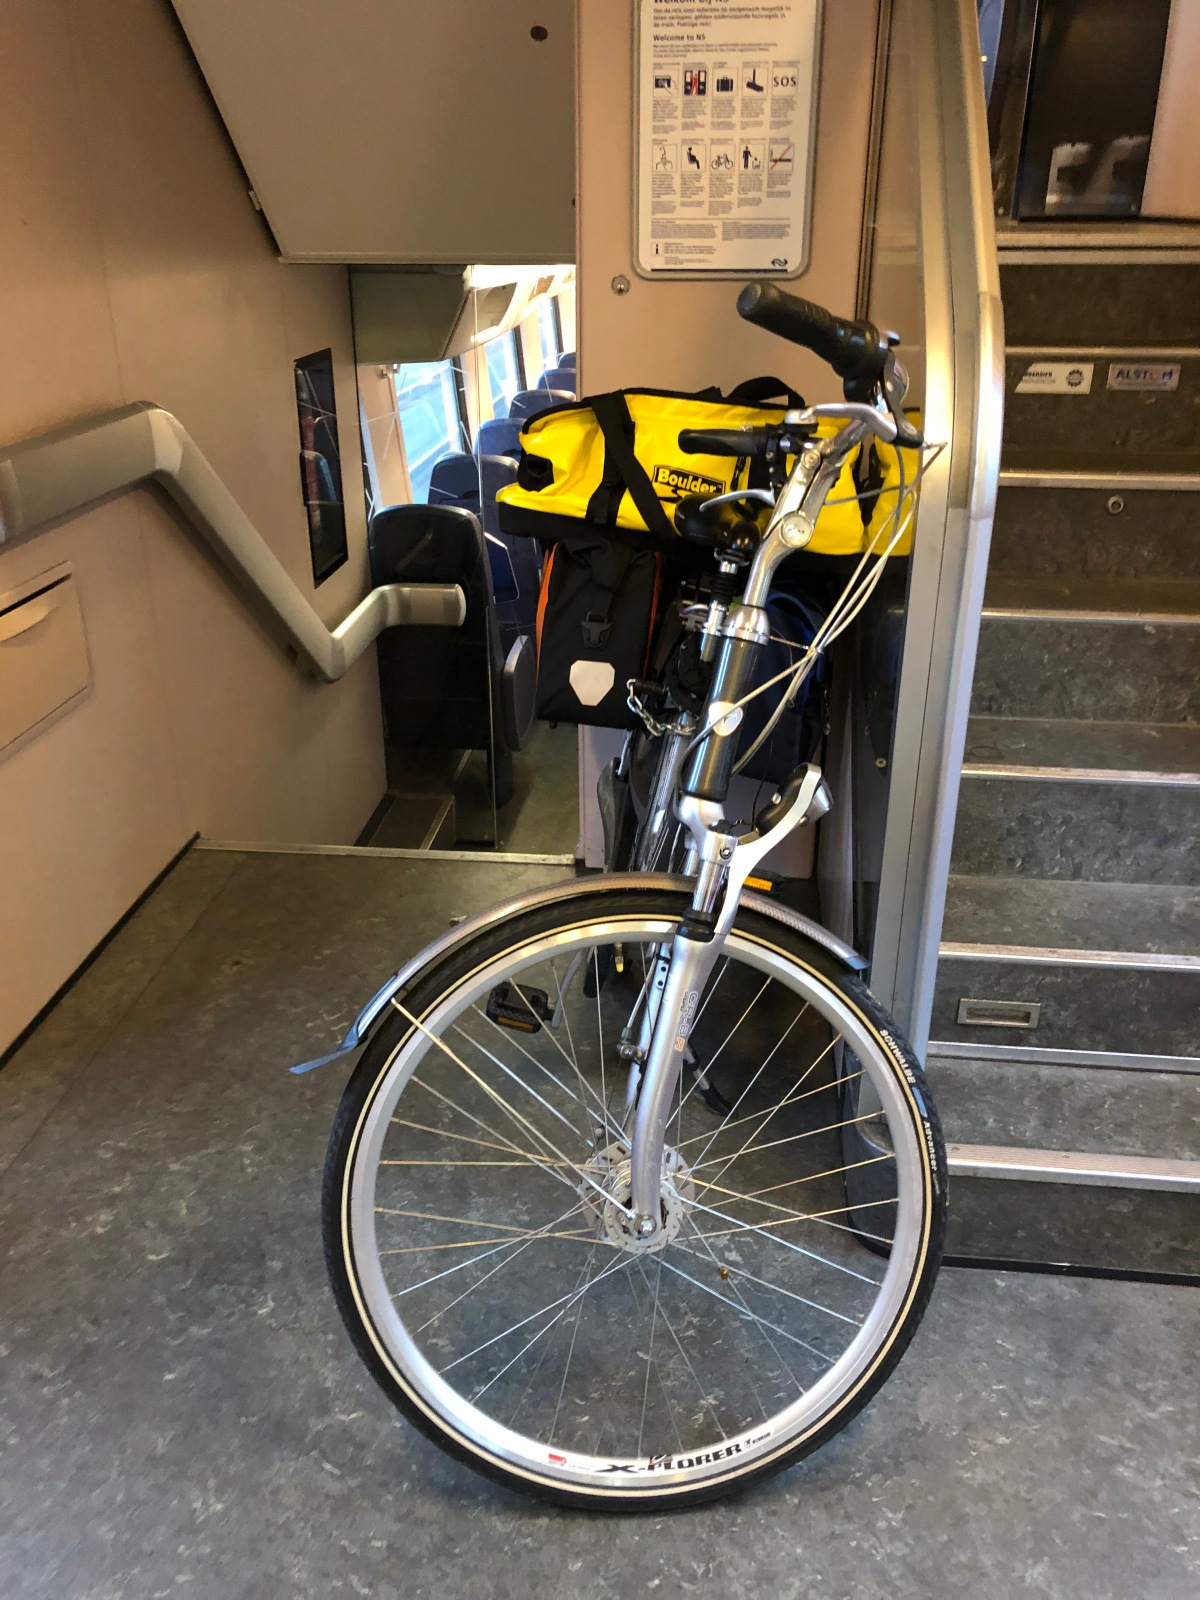 My bike riding in the train